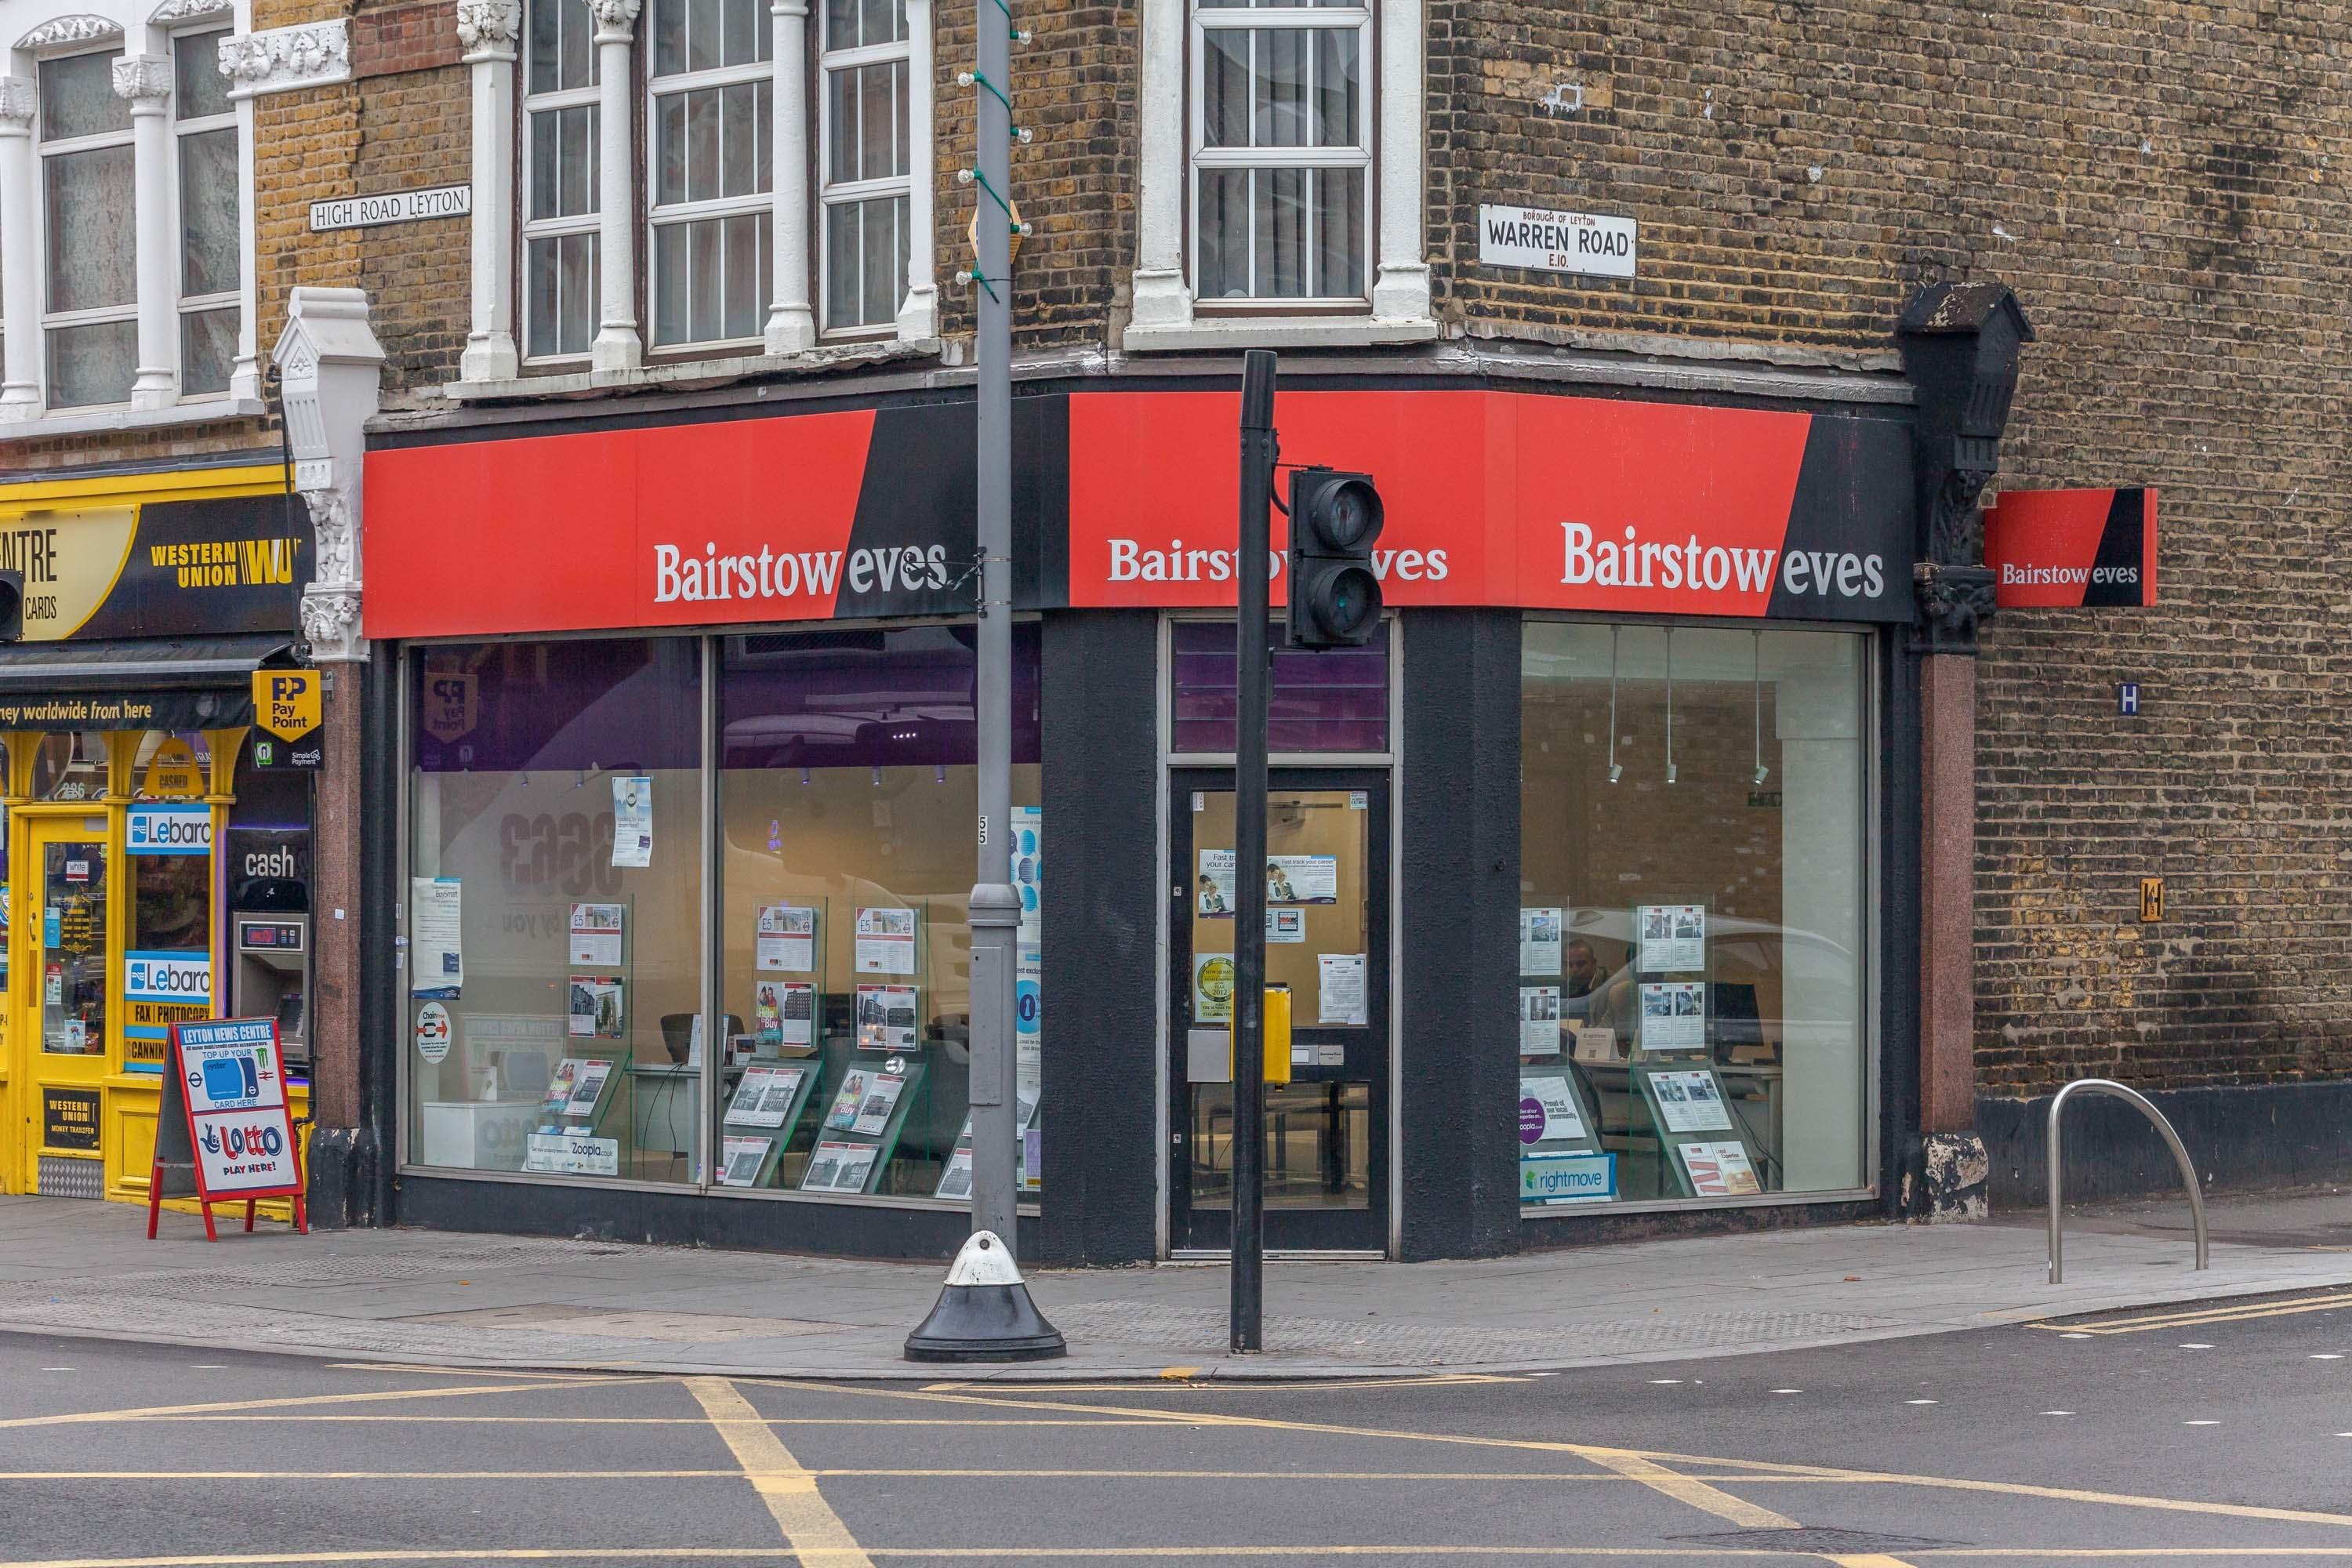 Bairstow Eves - Estate Agents in Leyton E10 5PS - 192.com